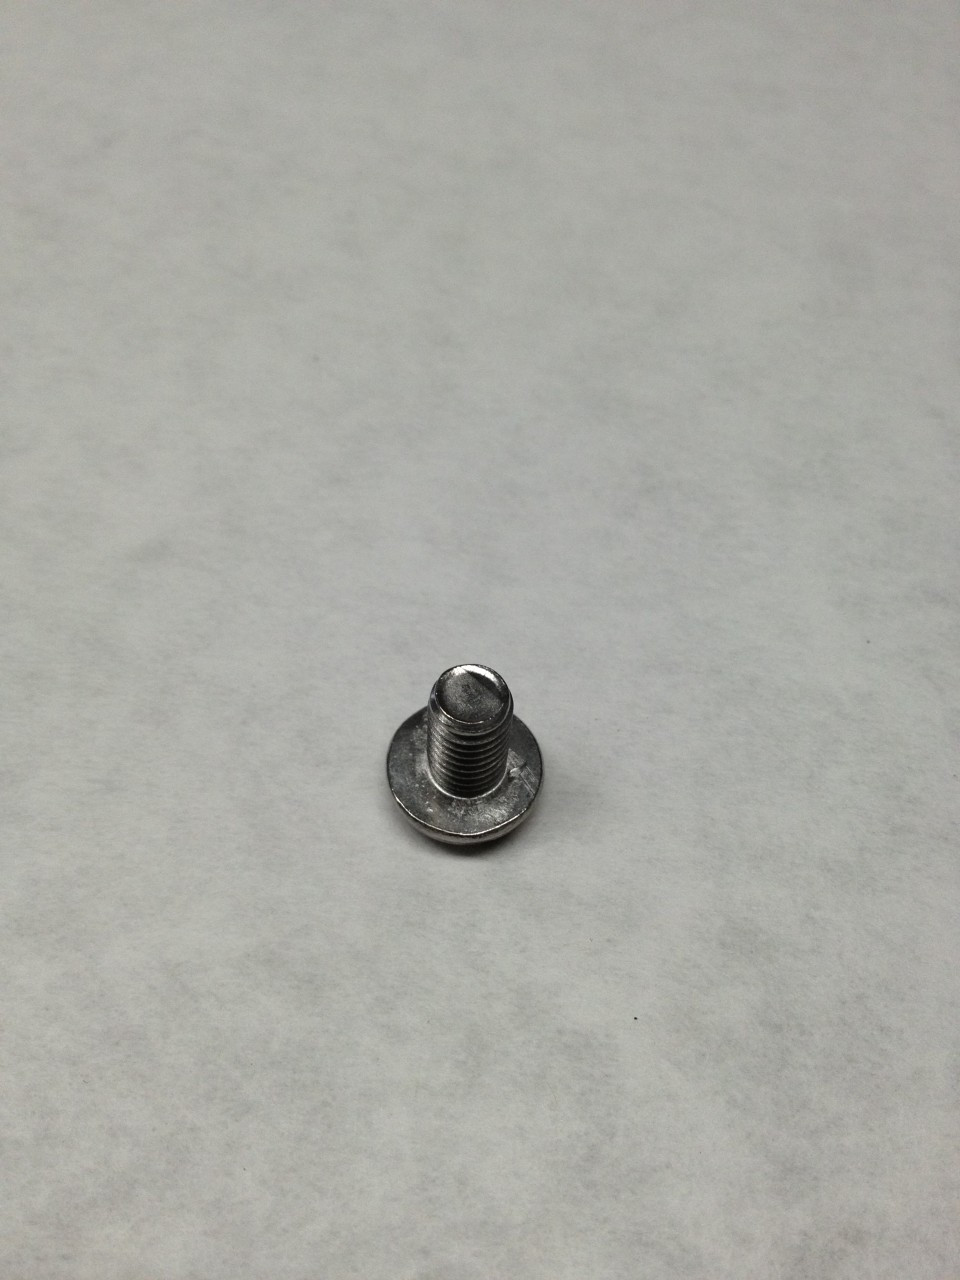 Talsa H-998 - H Series -- Screws for Acces Panel - 3184